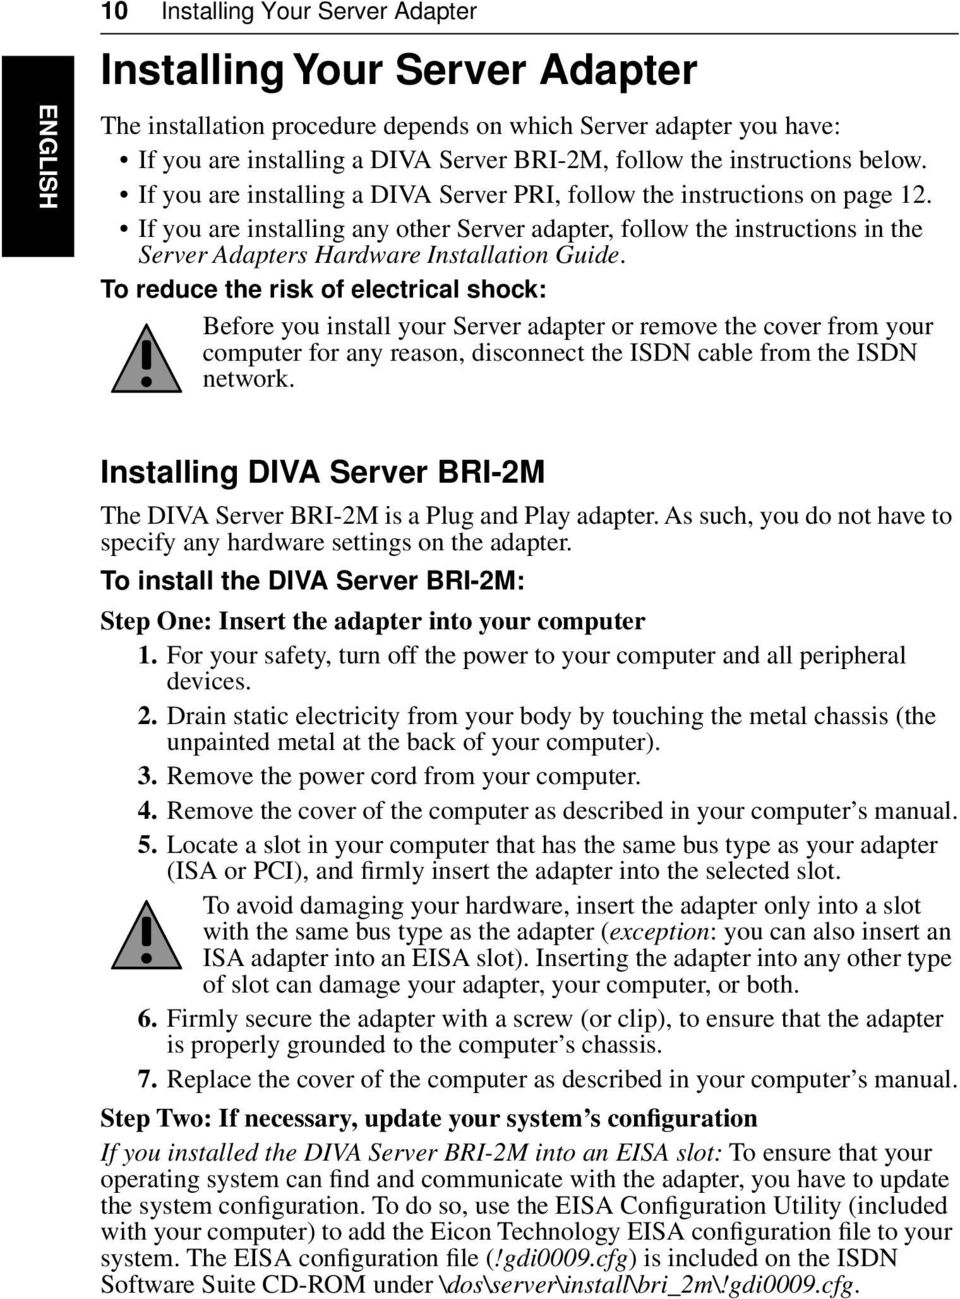 If you are installing any other Server adapter, follow the instructions in the Server Adapters Hardware Installation Guide.